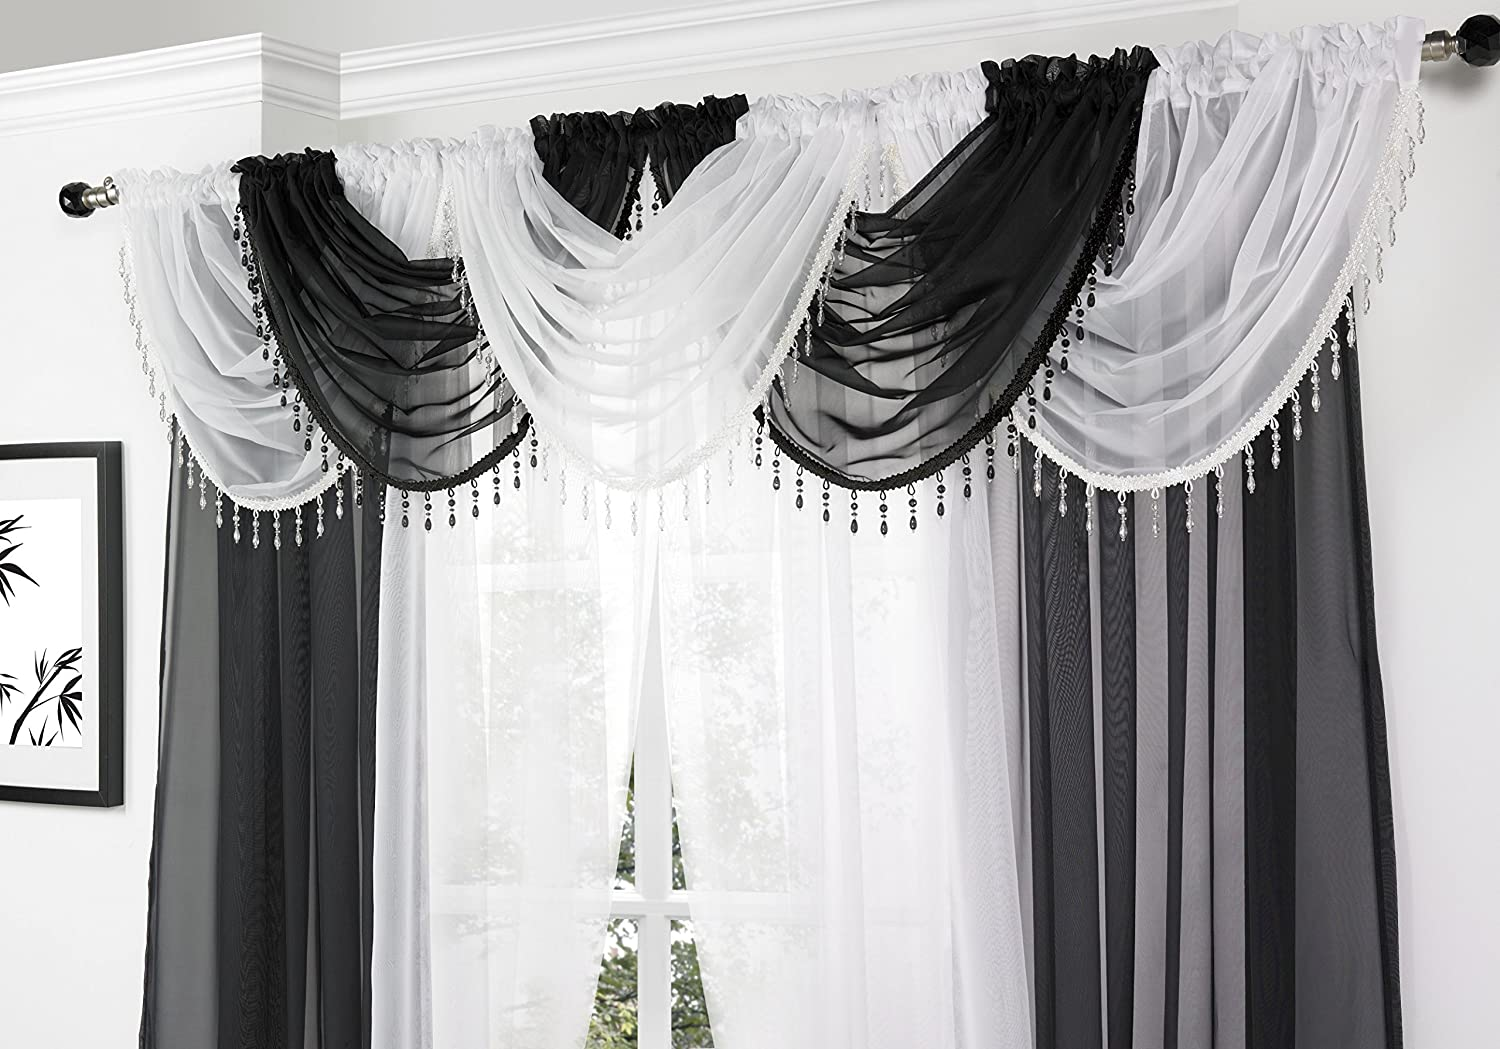 Black Voile Curtain Swag with Crystal Beaded Trim by Maple ...